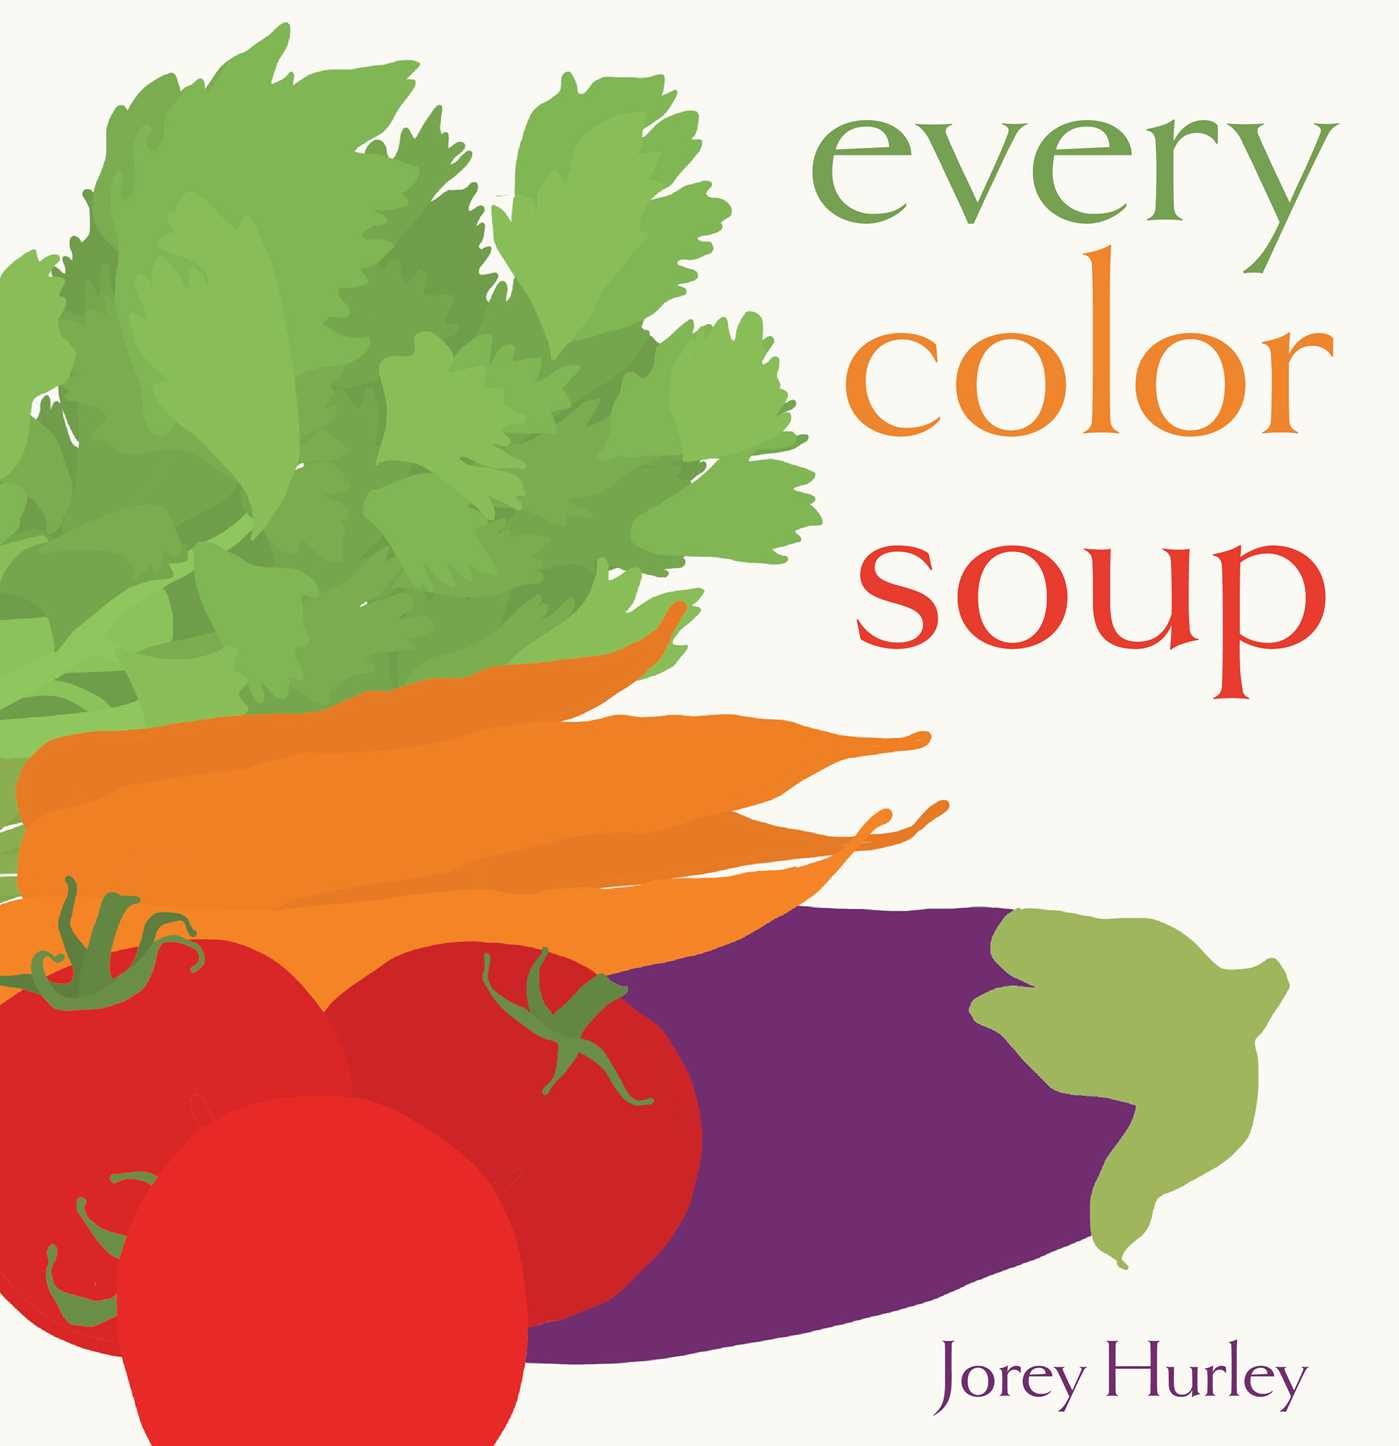 Every Color Soup | Book by Jorey Hurley | Official Publisher Page ...